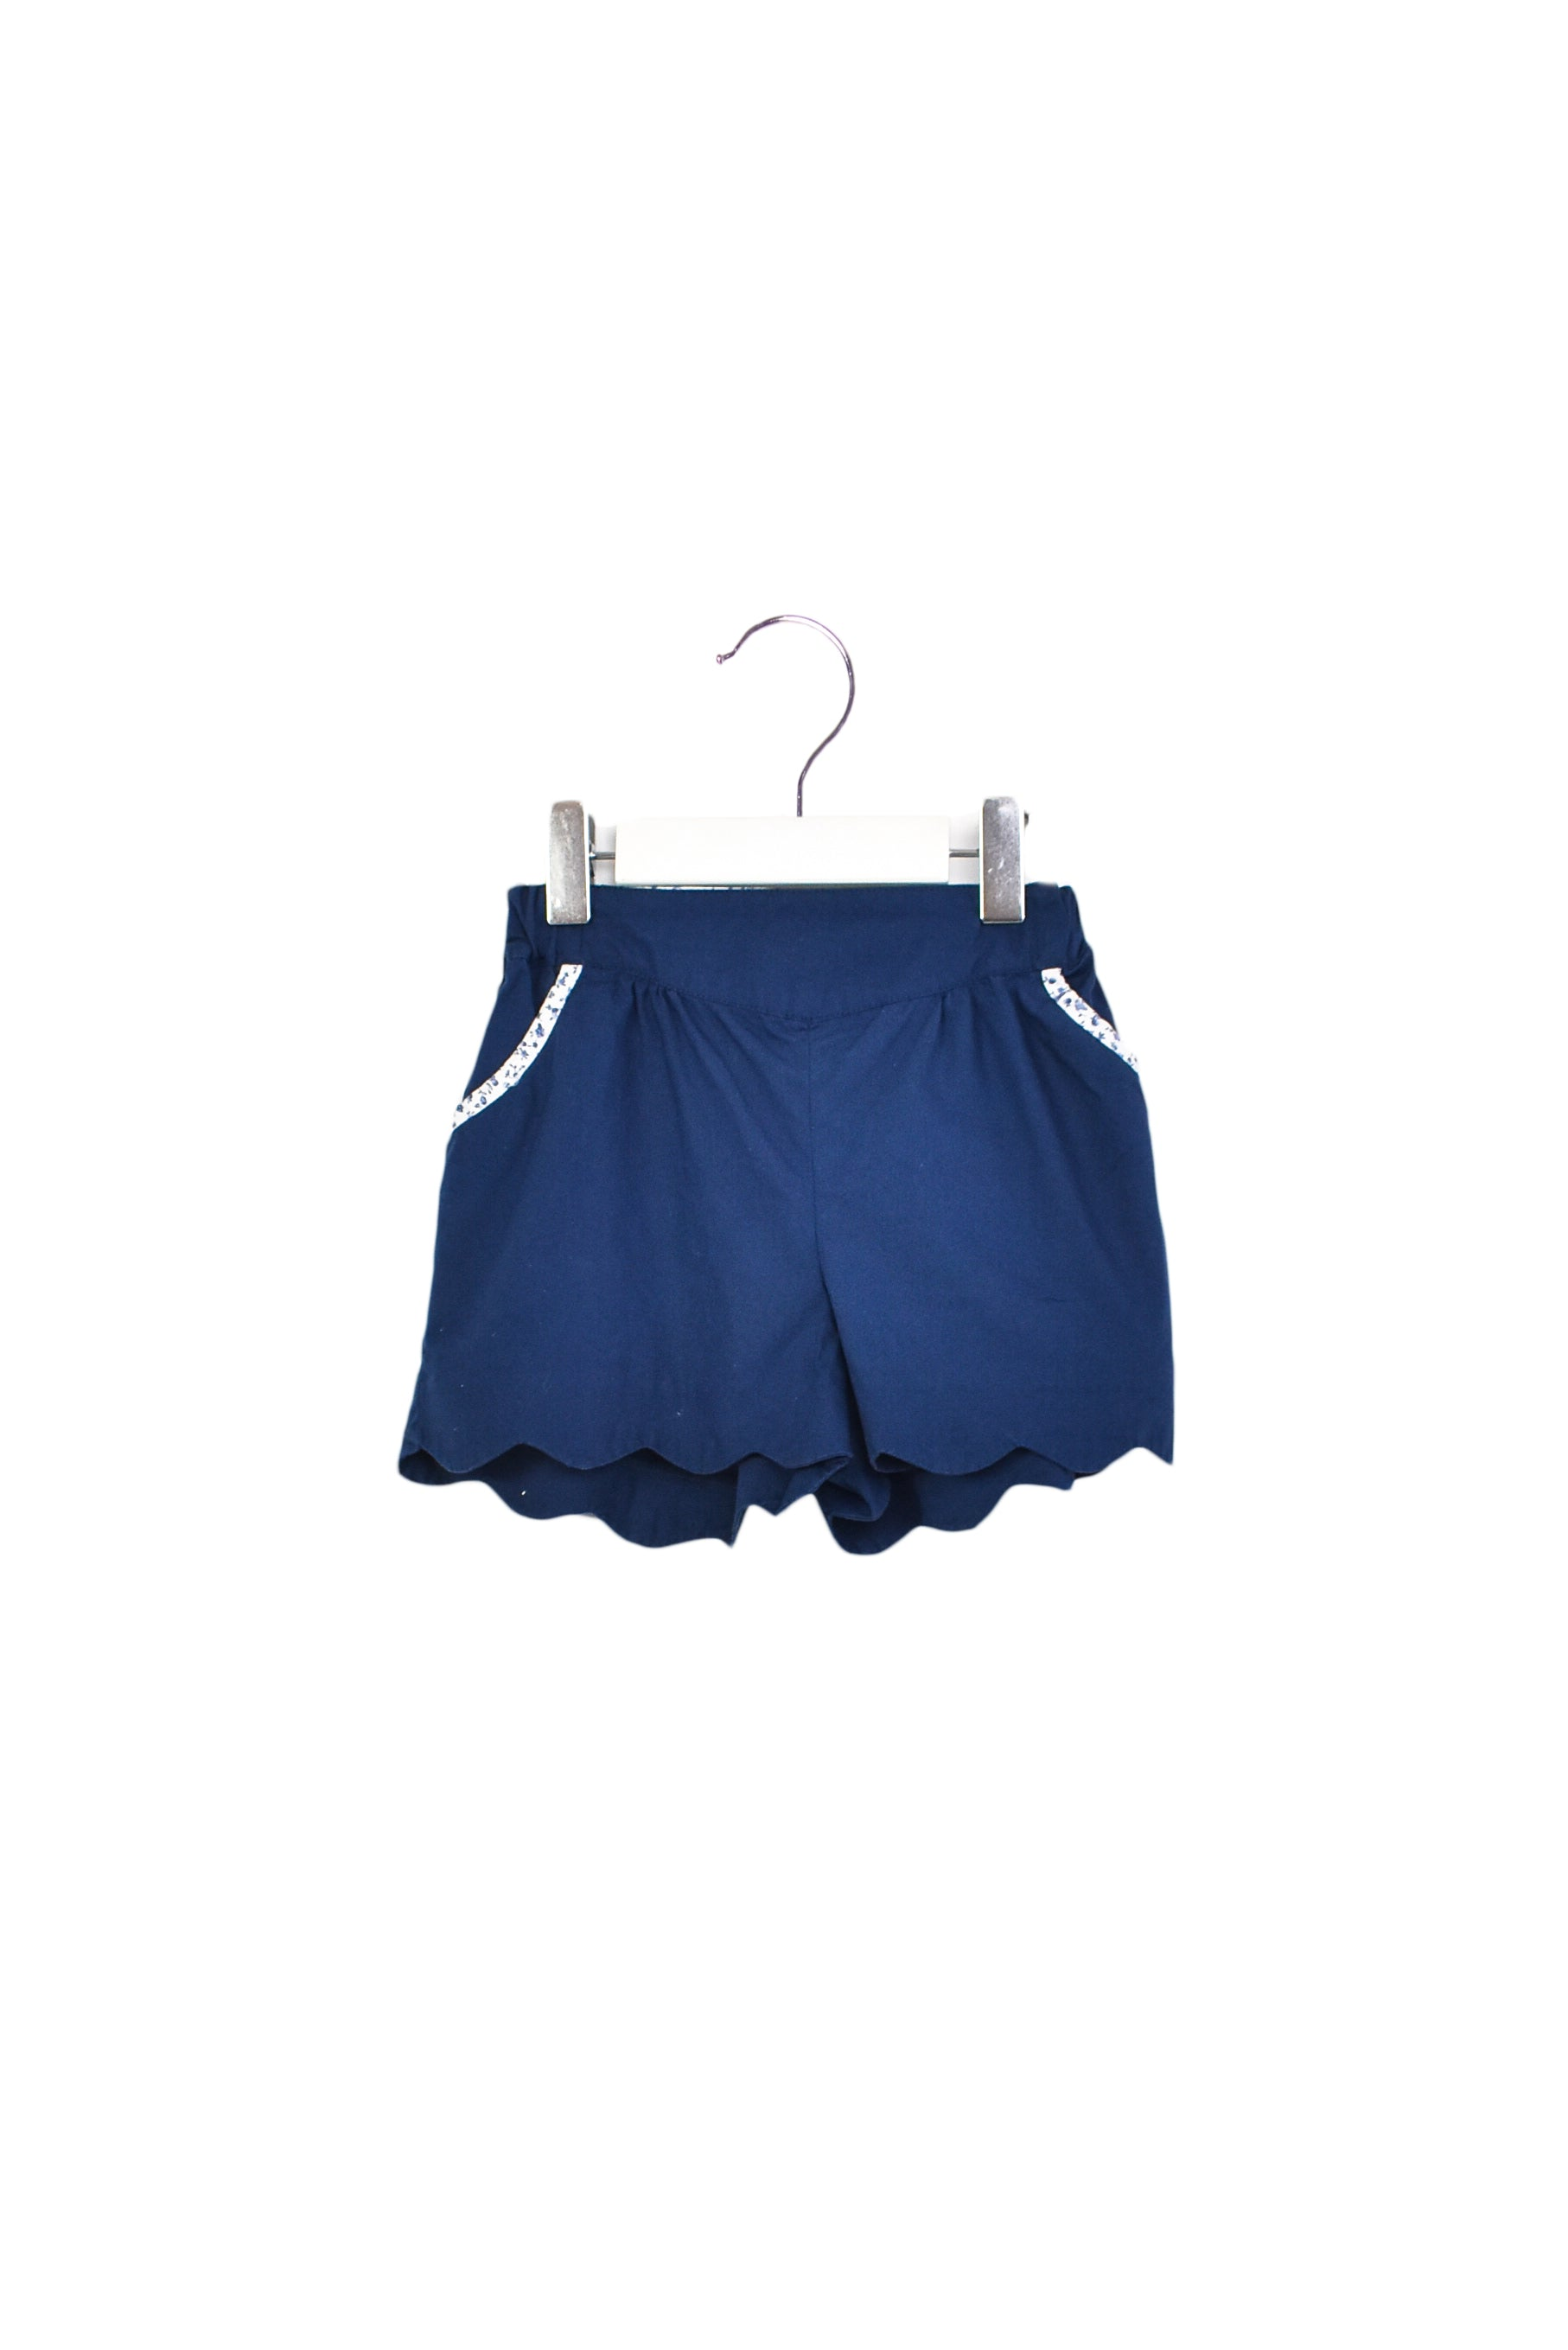 10013201 Confiture Kids ~ Shorts 4-5T at Retykle